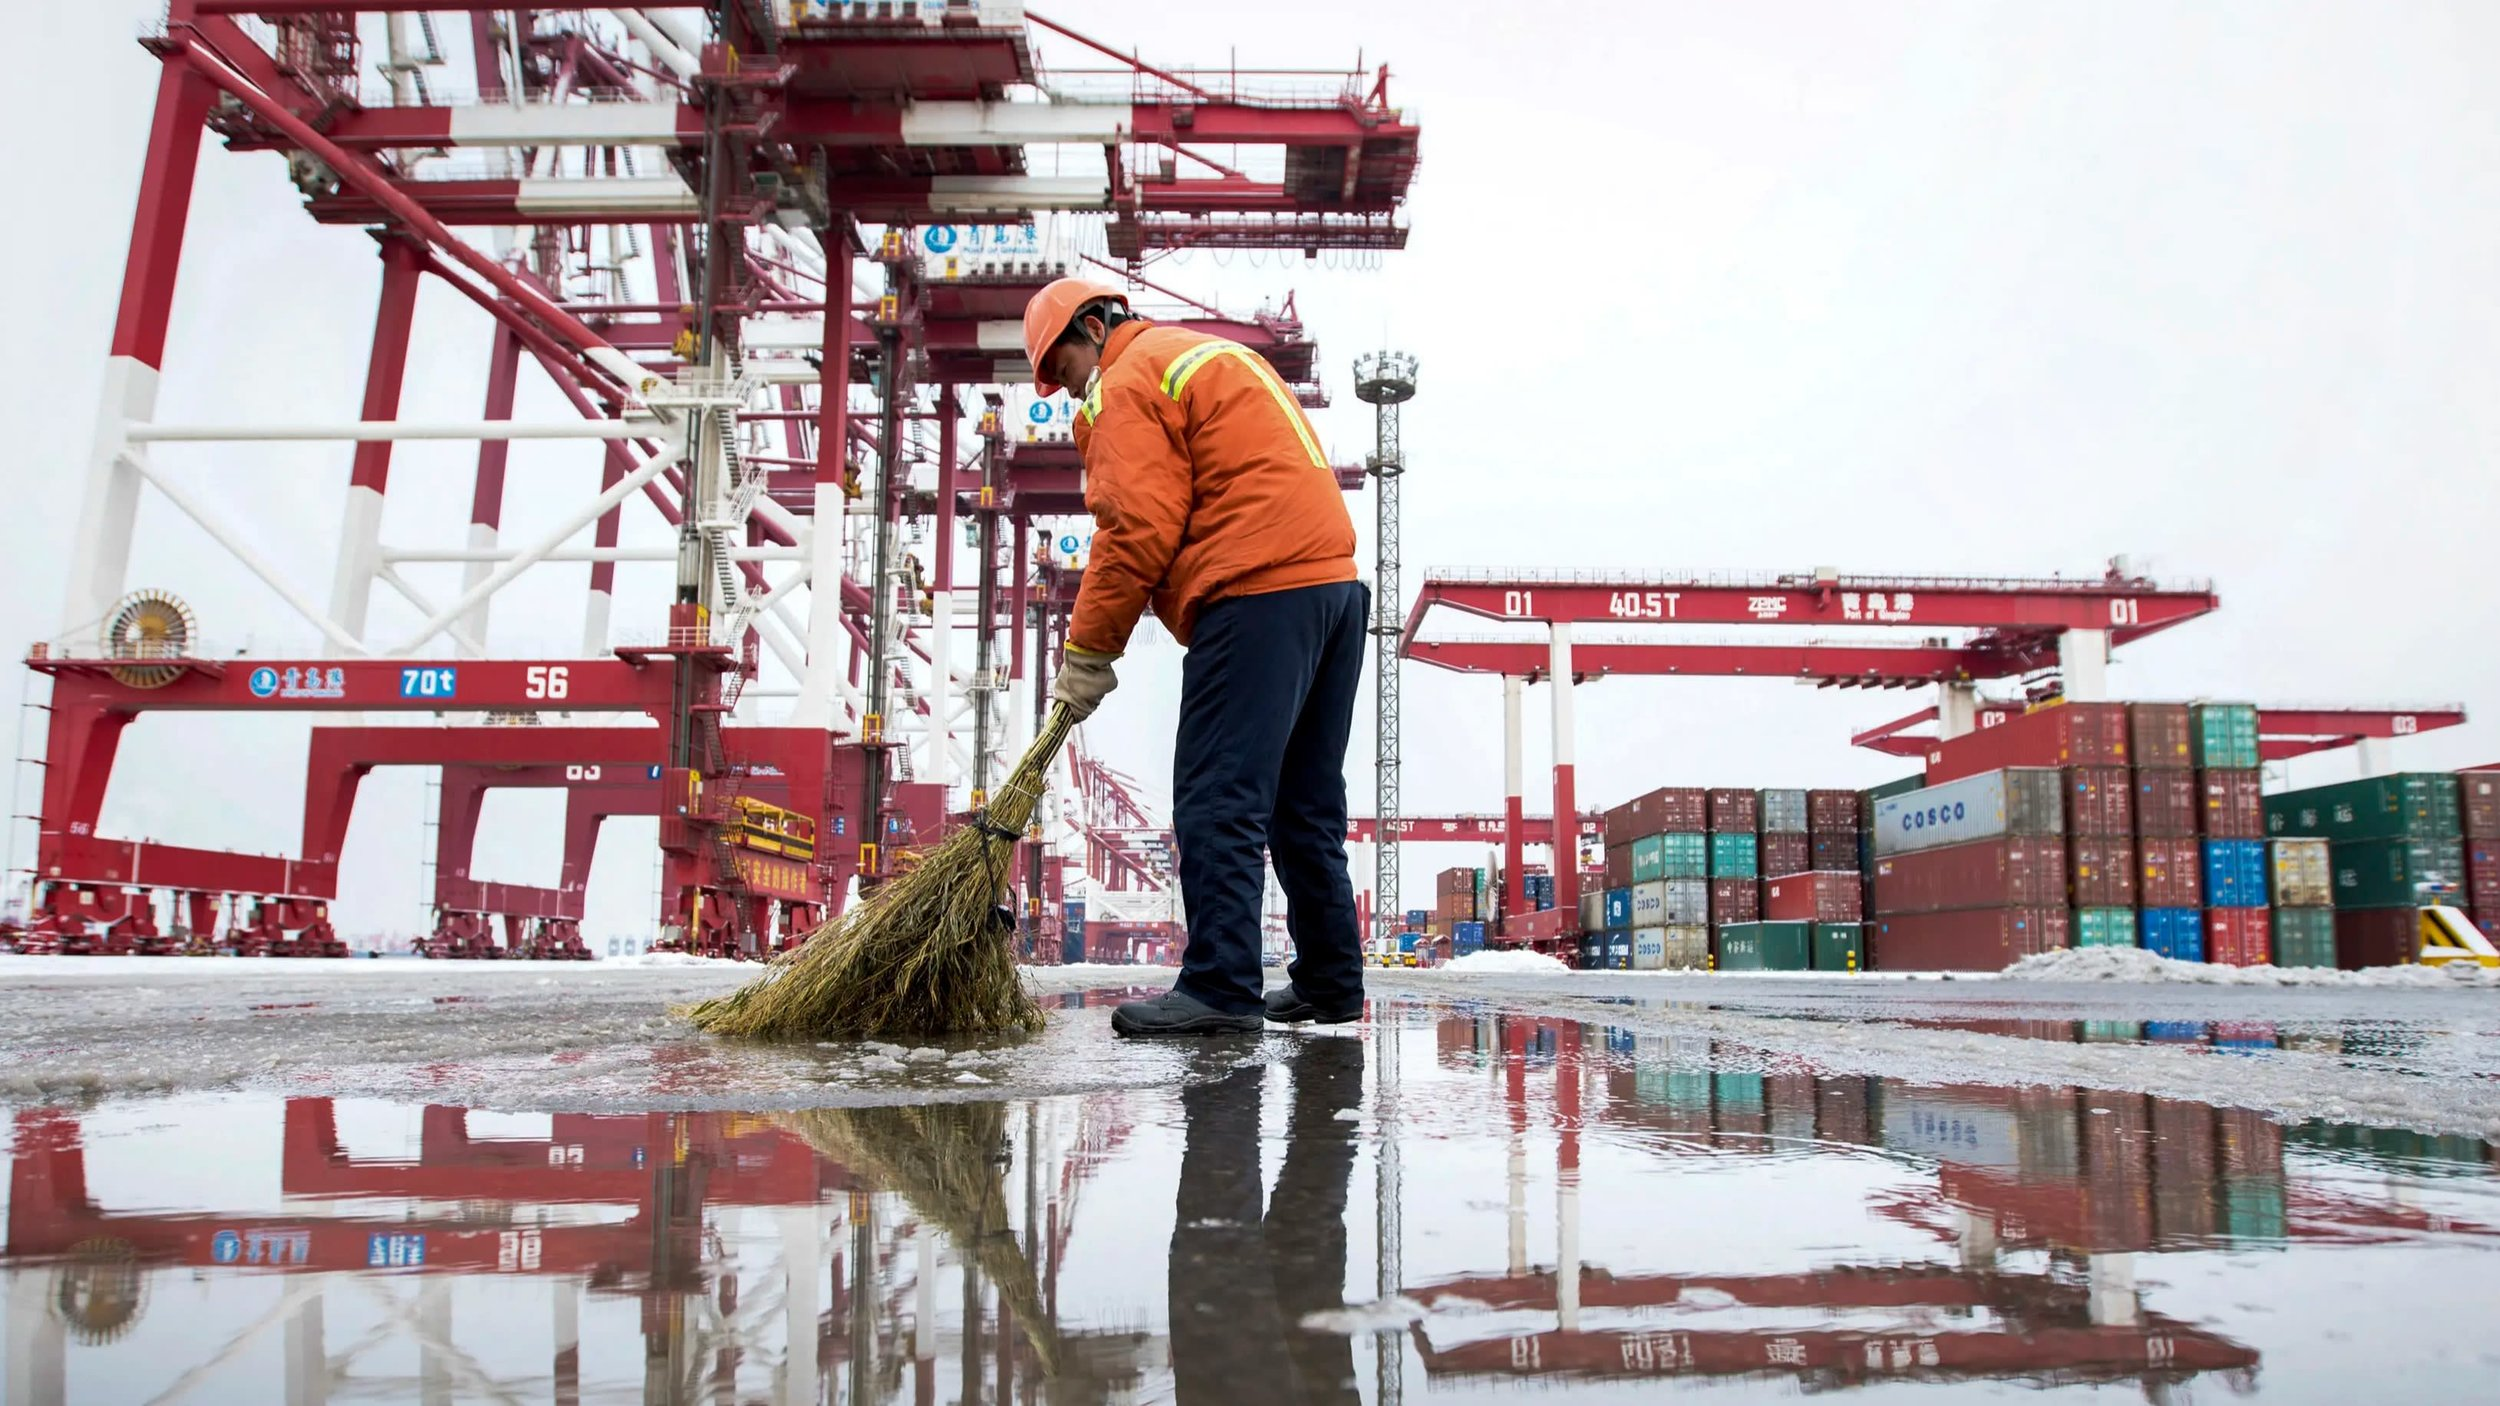 A worker sweeps the road at a container port in Qingdao in east China's Shandong Province. American and Chinese trade negotiators cannot agree on enforcement measures ahead of a trade deal. Photo credit: AP